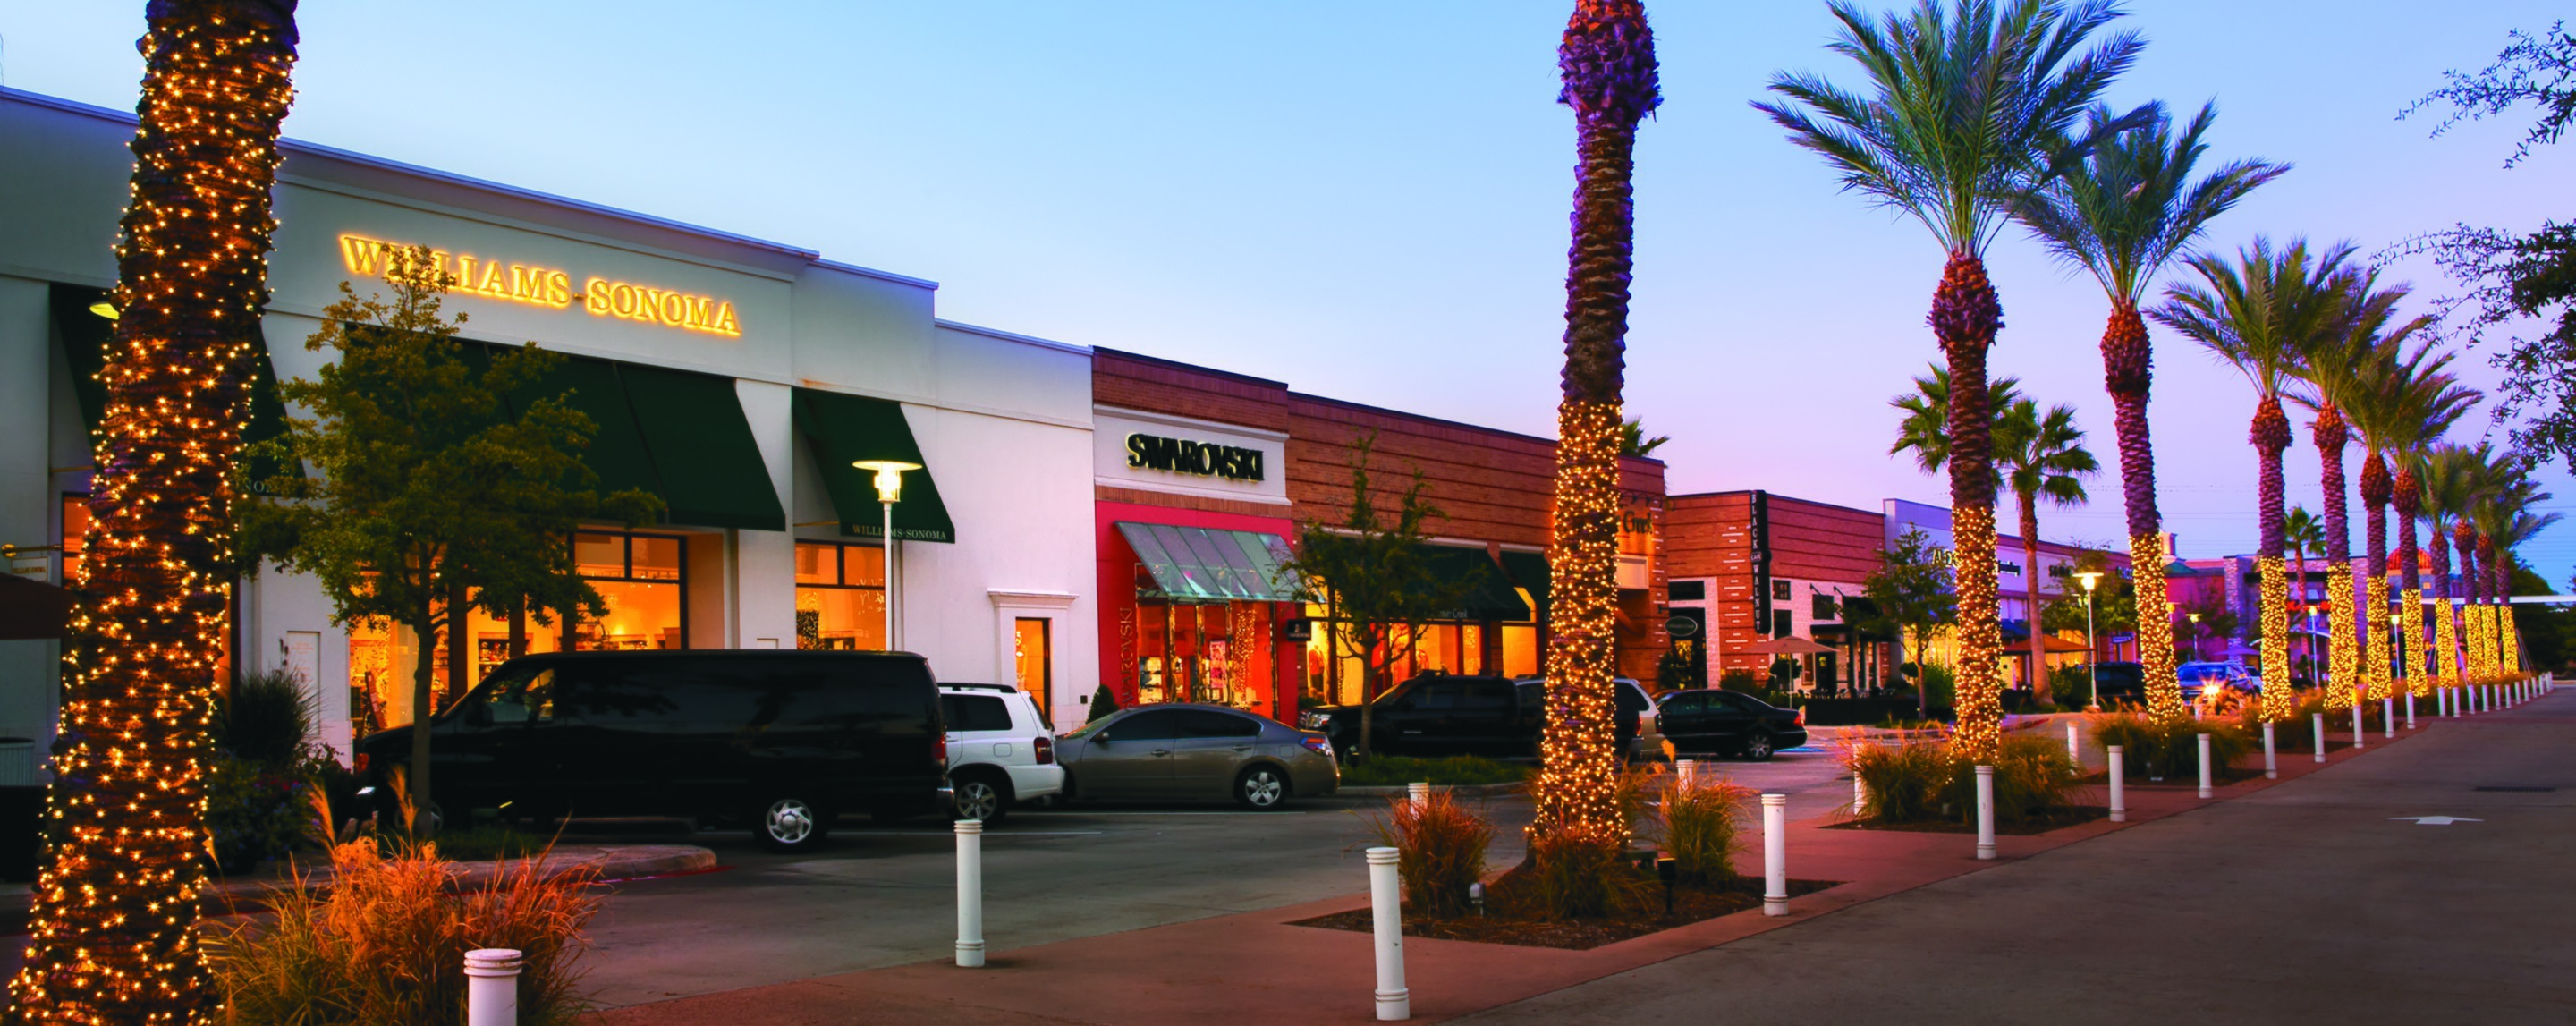 Outside the First Colony Mall, the streets and parking areas are lined with lit up palm trees and store fronts.